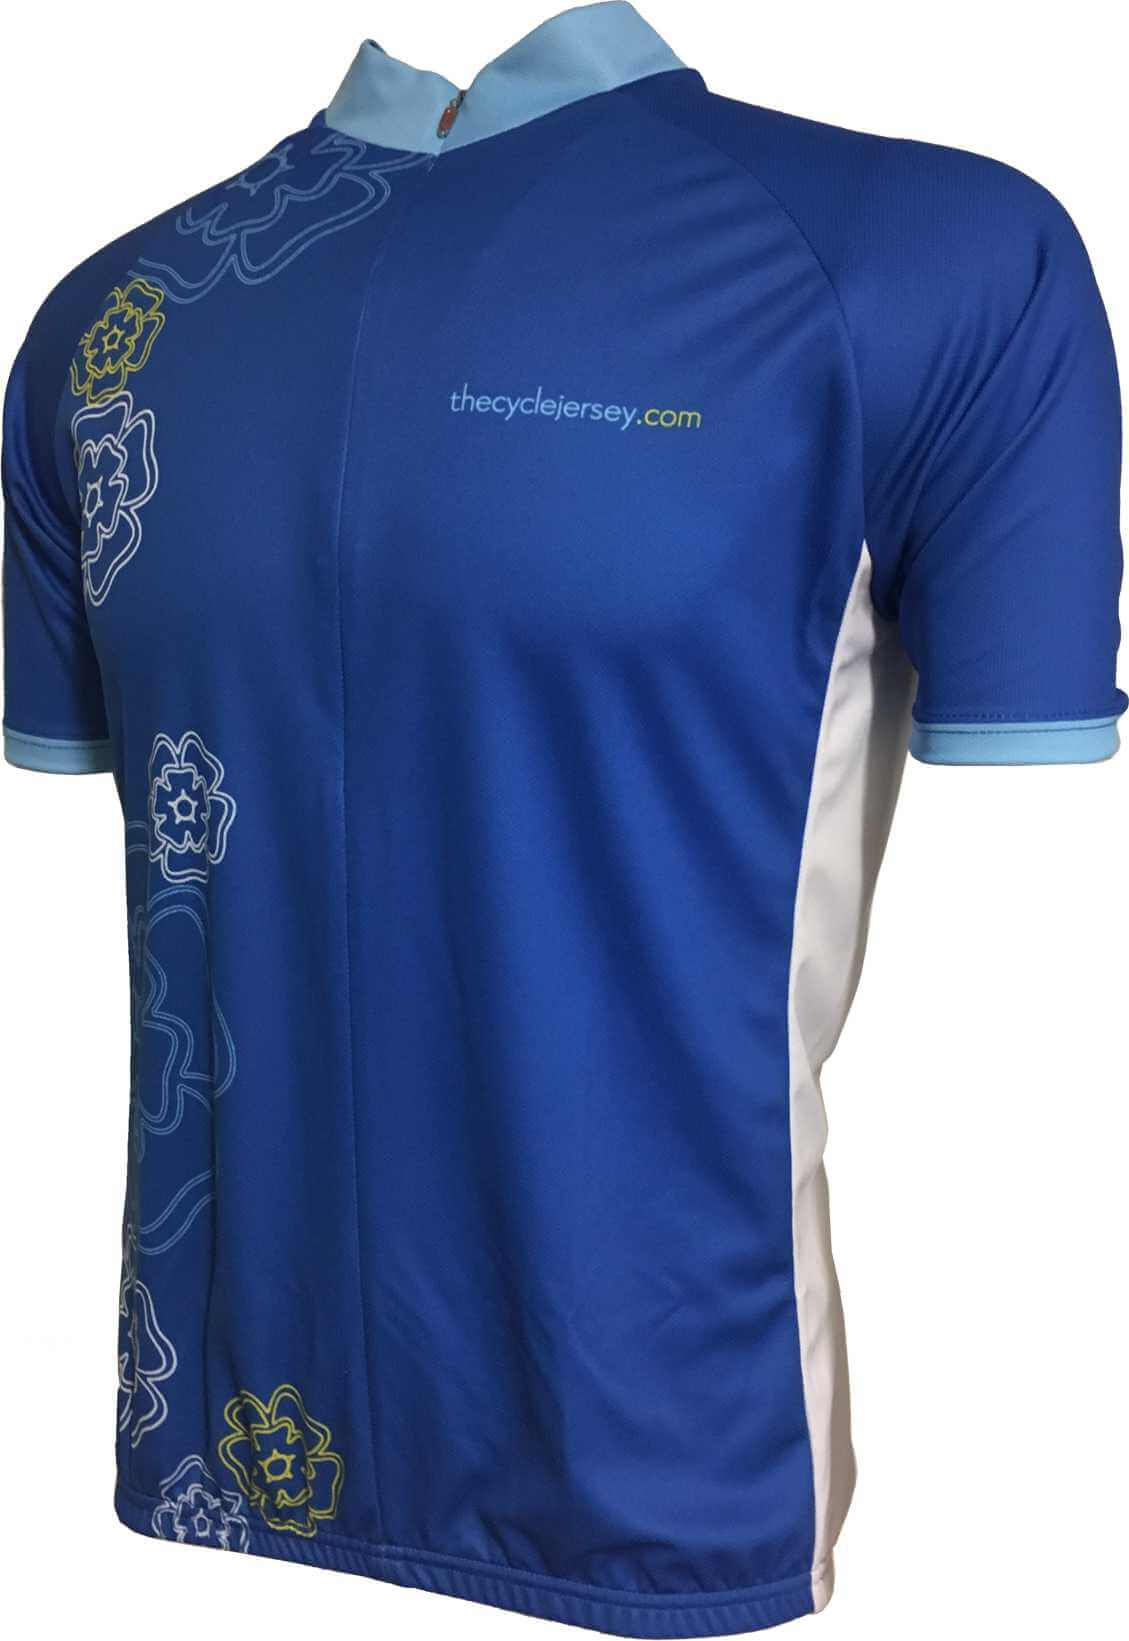 Yorkshire Rose Kids Cycle Jersey Front